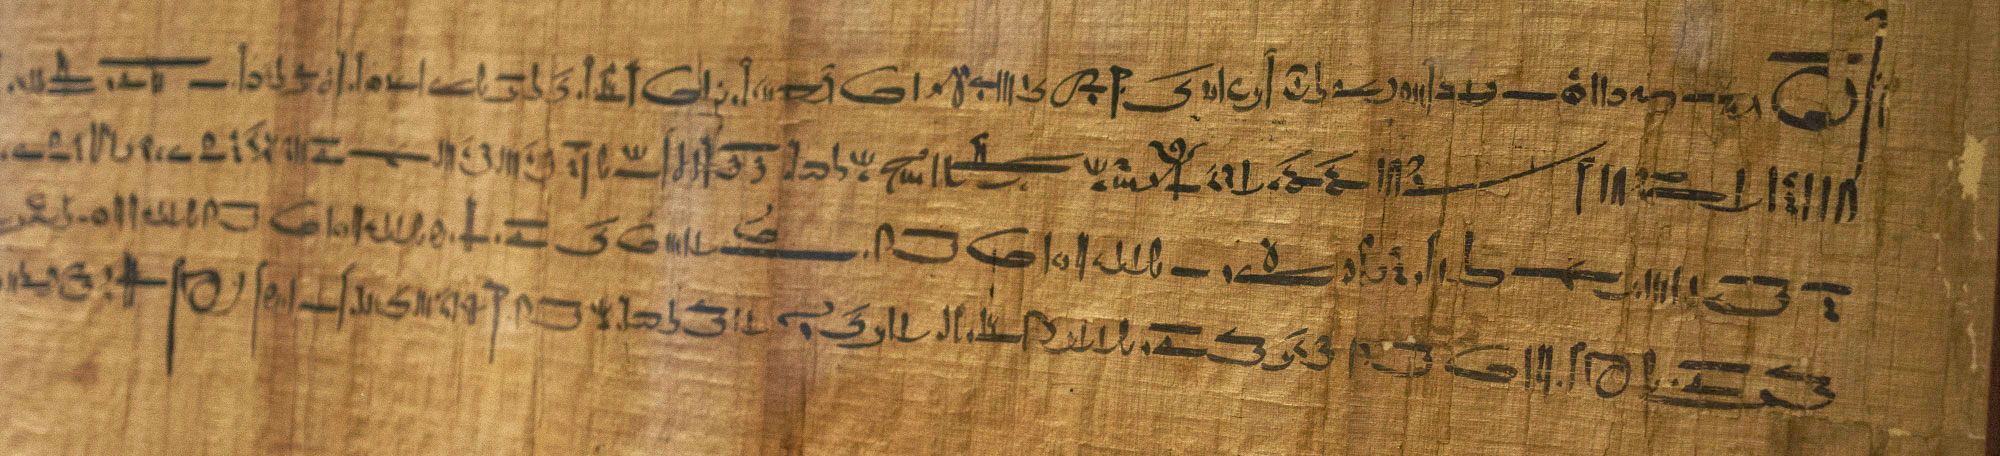 ancient egyptian culture and language relationship